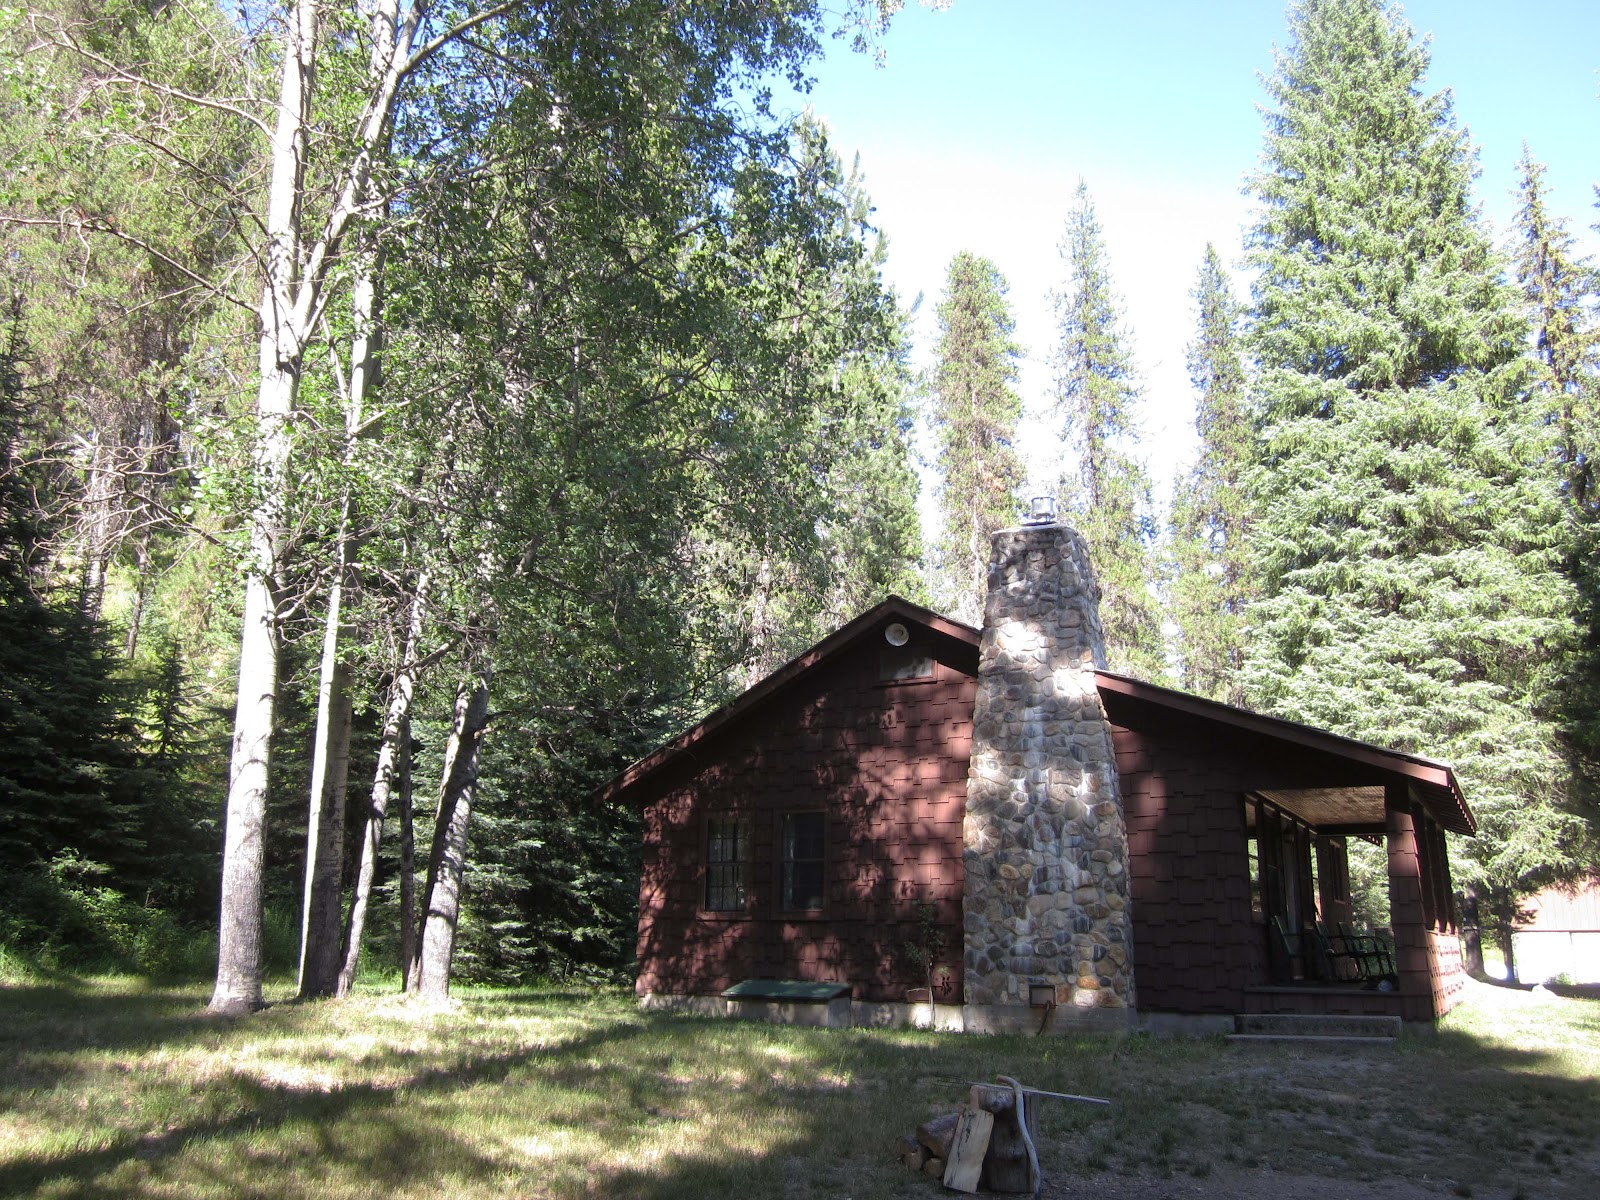 Karen charbonneau 39 s blog a trip to red ives cabin for National forest service cabins